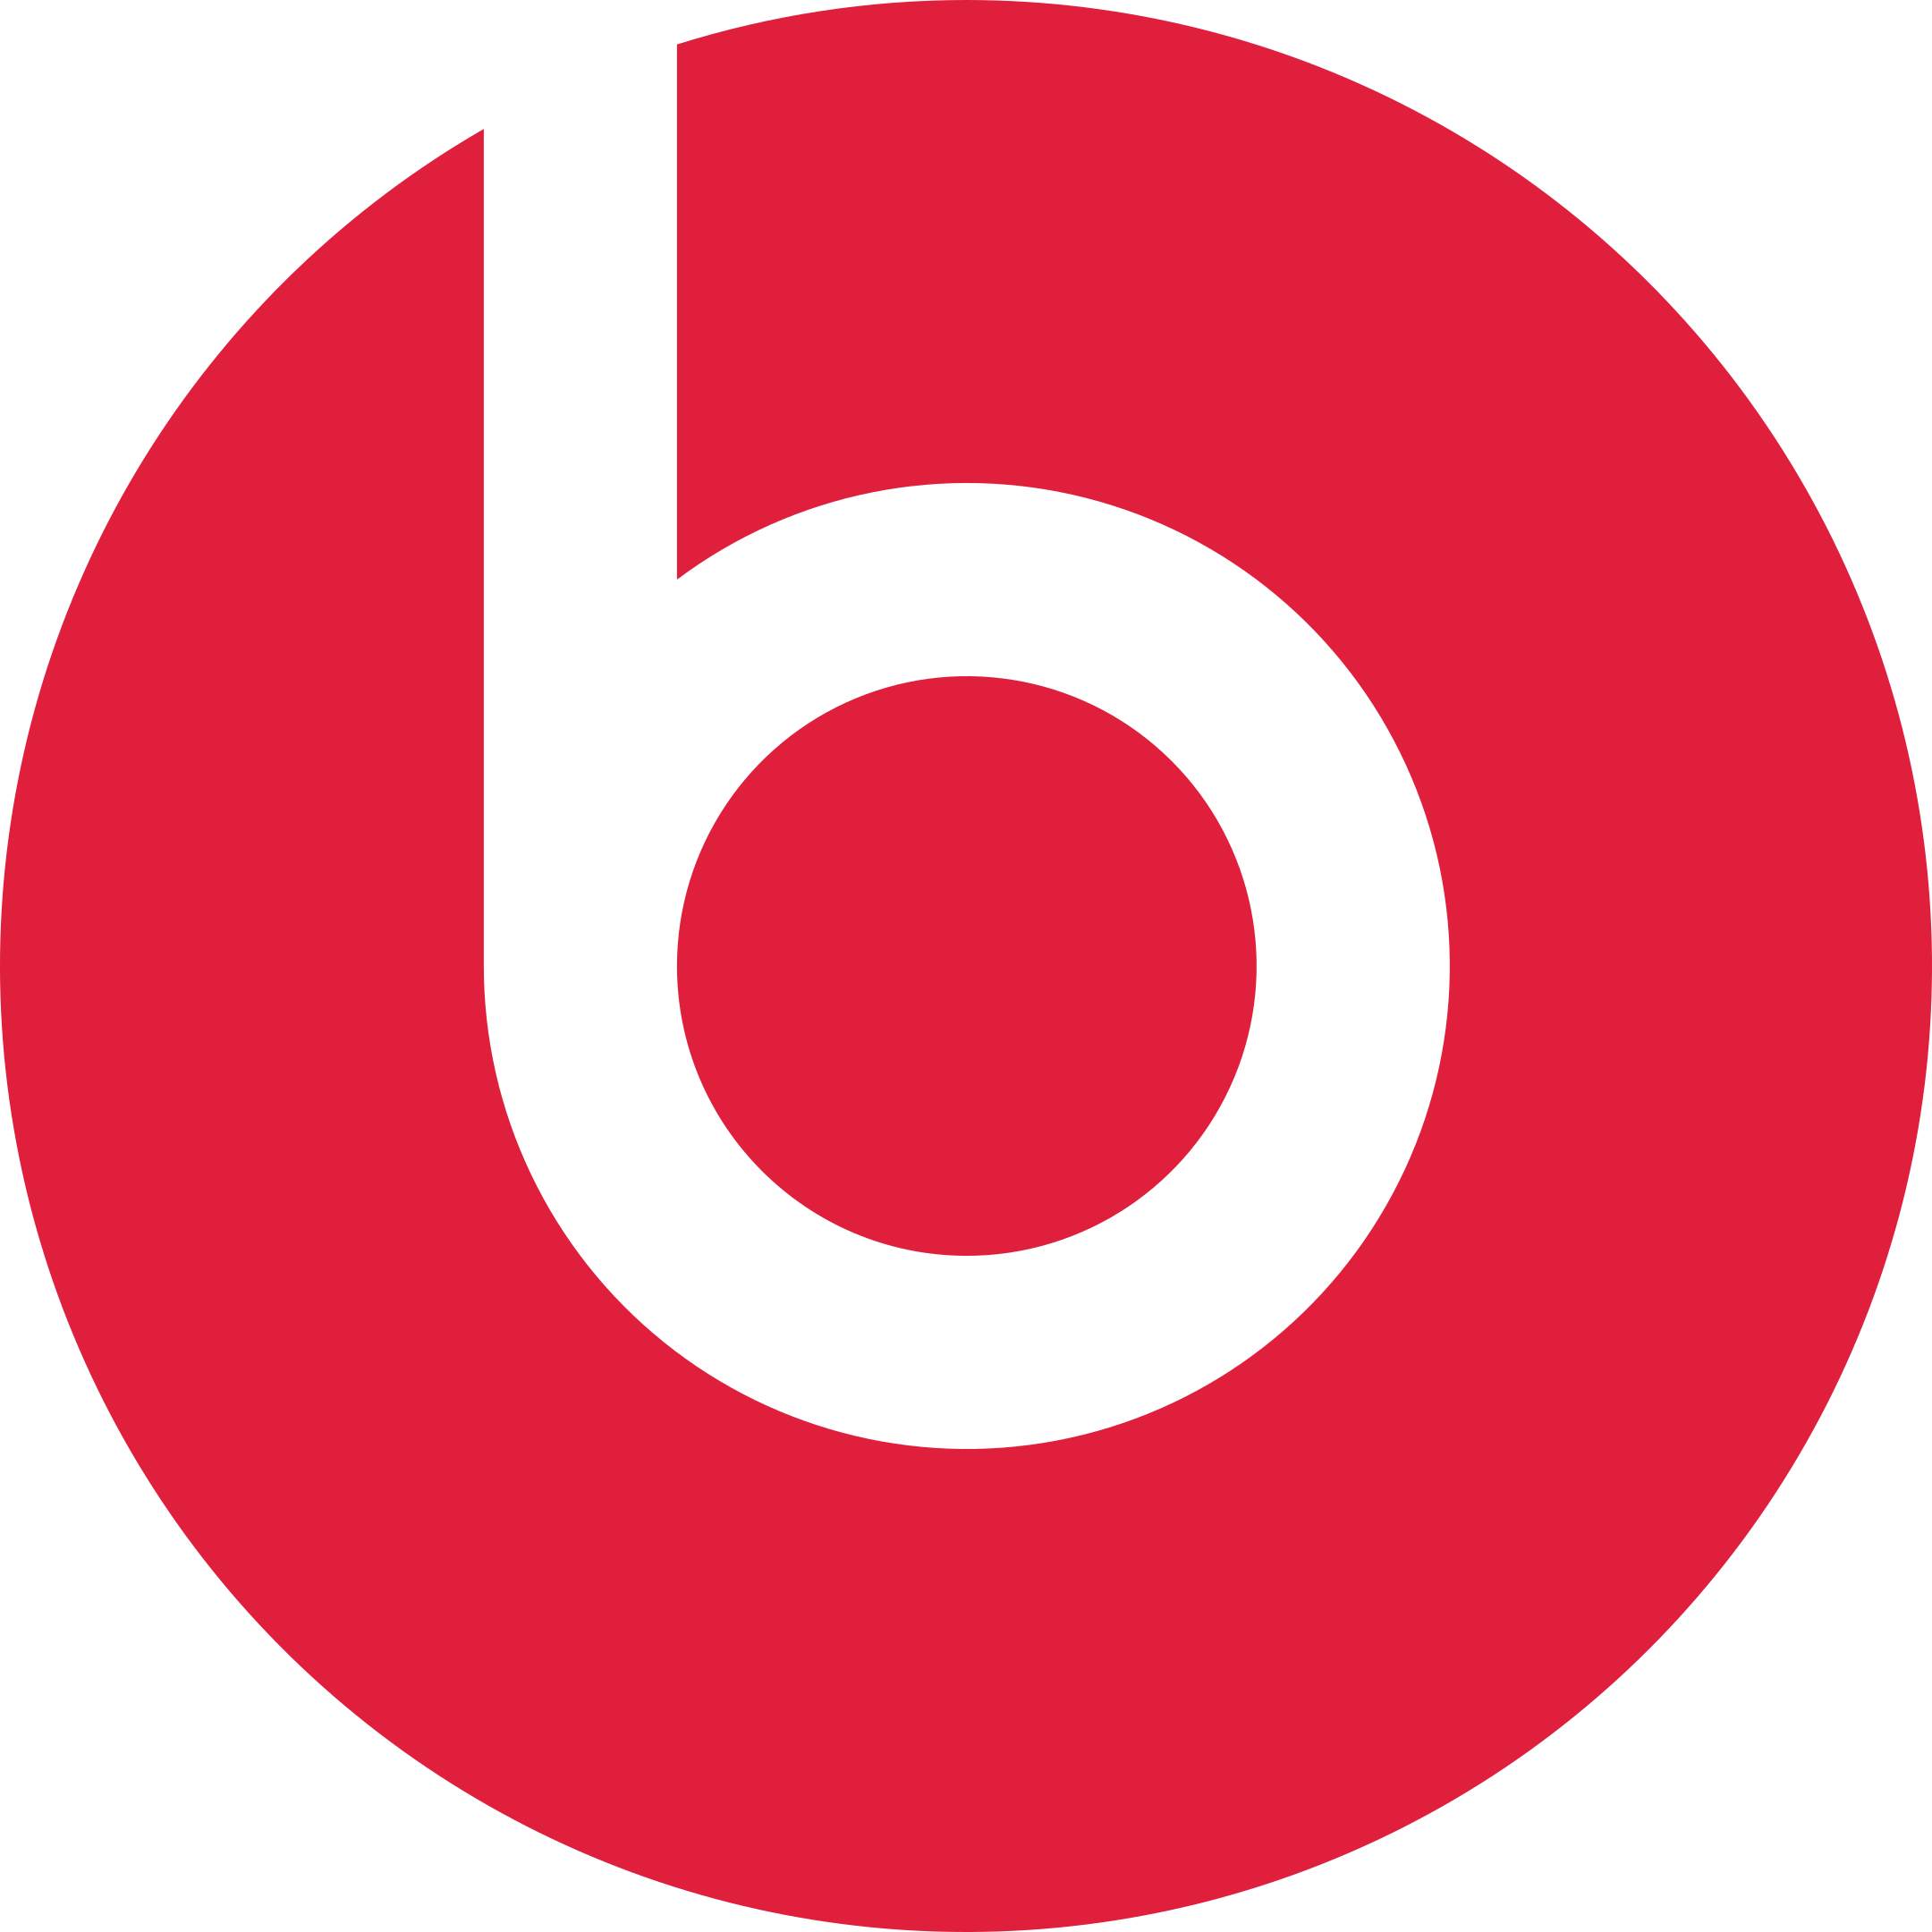 beats by dre logo 1 - Beats by Dr Dre Logo